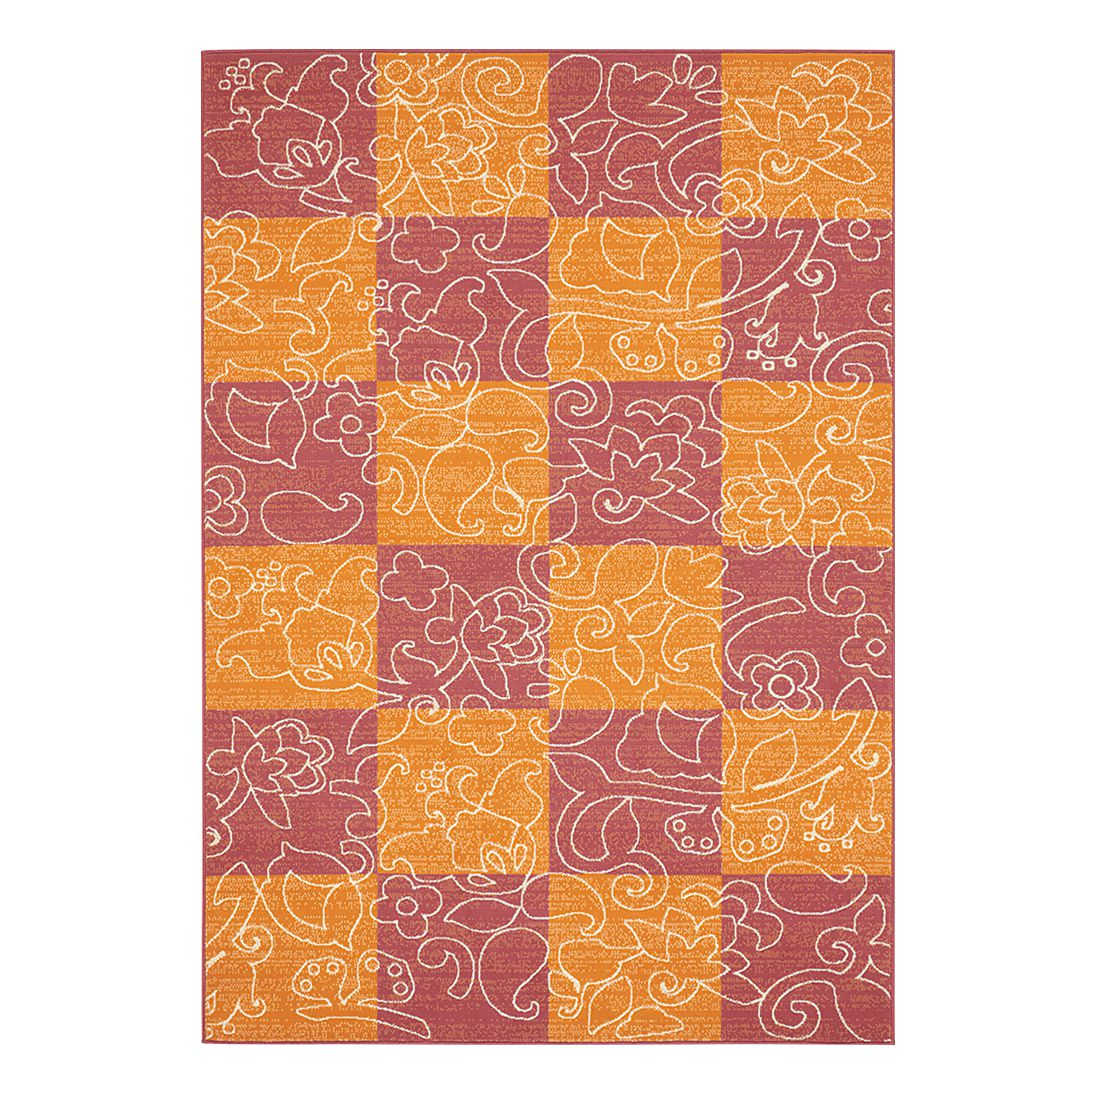 Teppich Hamla – Orange/Lila – 80 x 150 cm, Hanse Home Collection bestellen